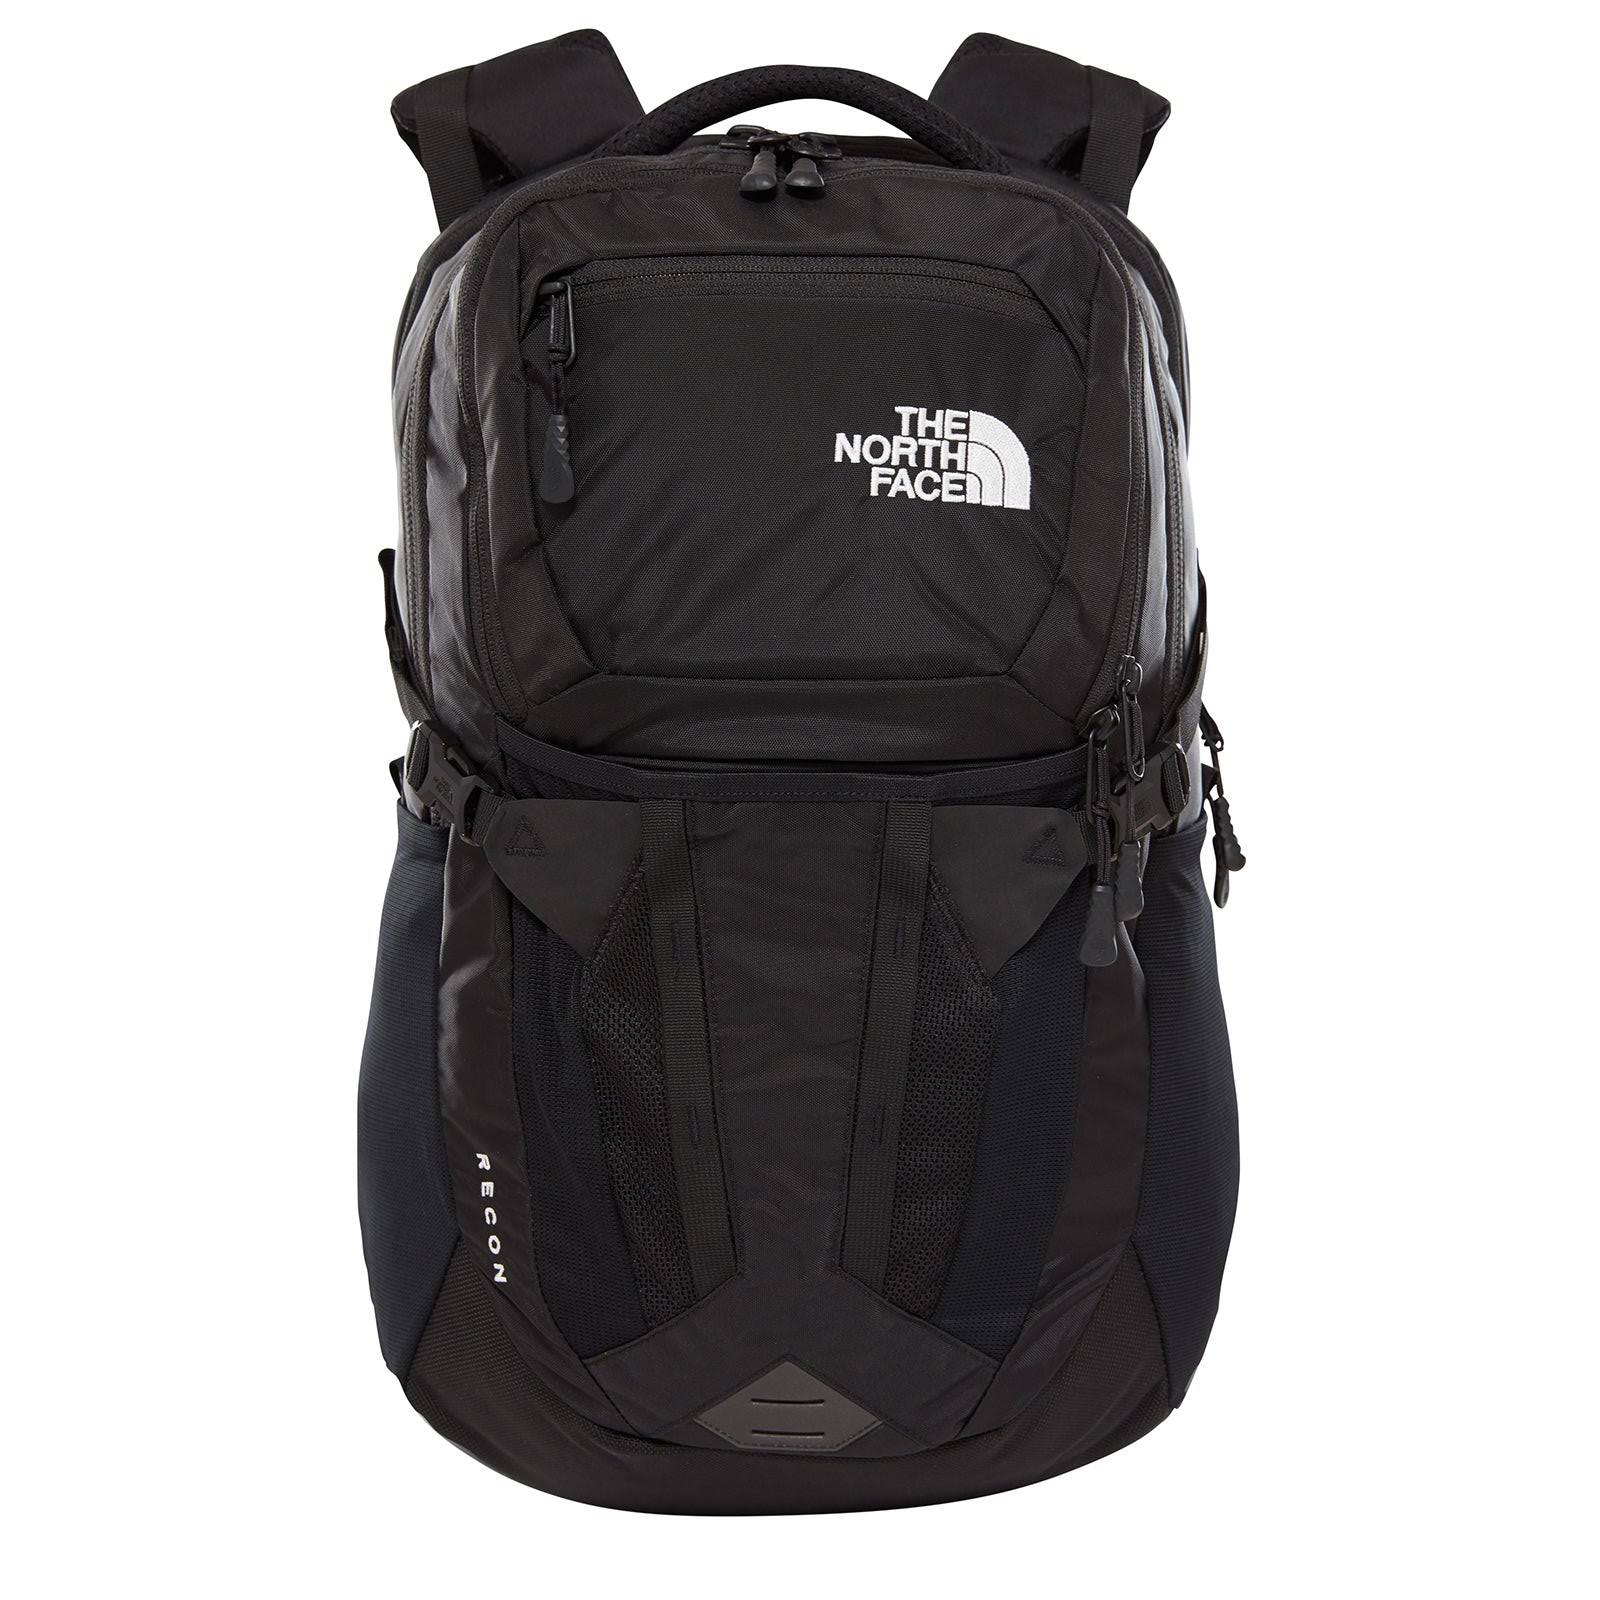 The North Face Men's Recon 18 Backpack - TNF Black, 30l